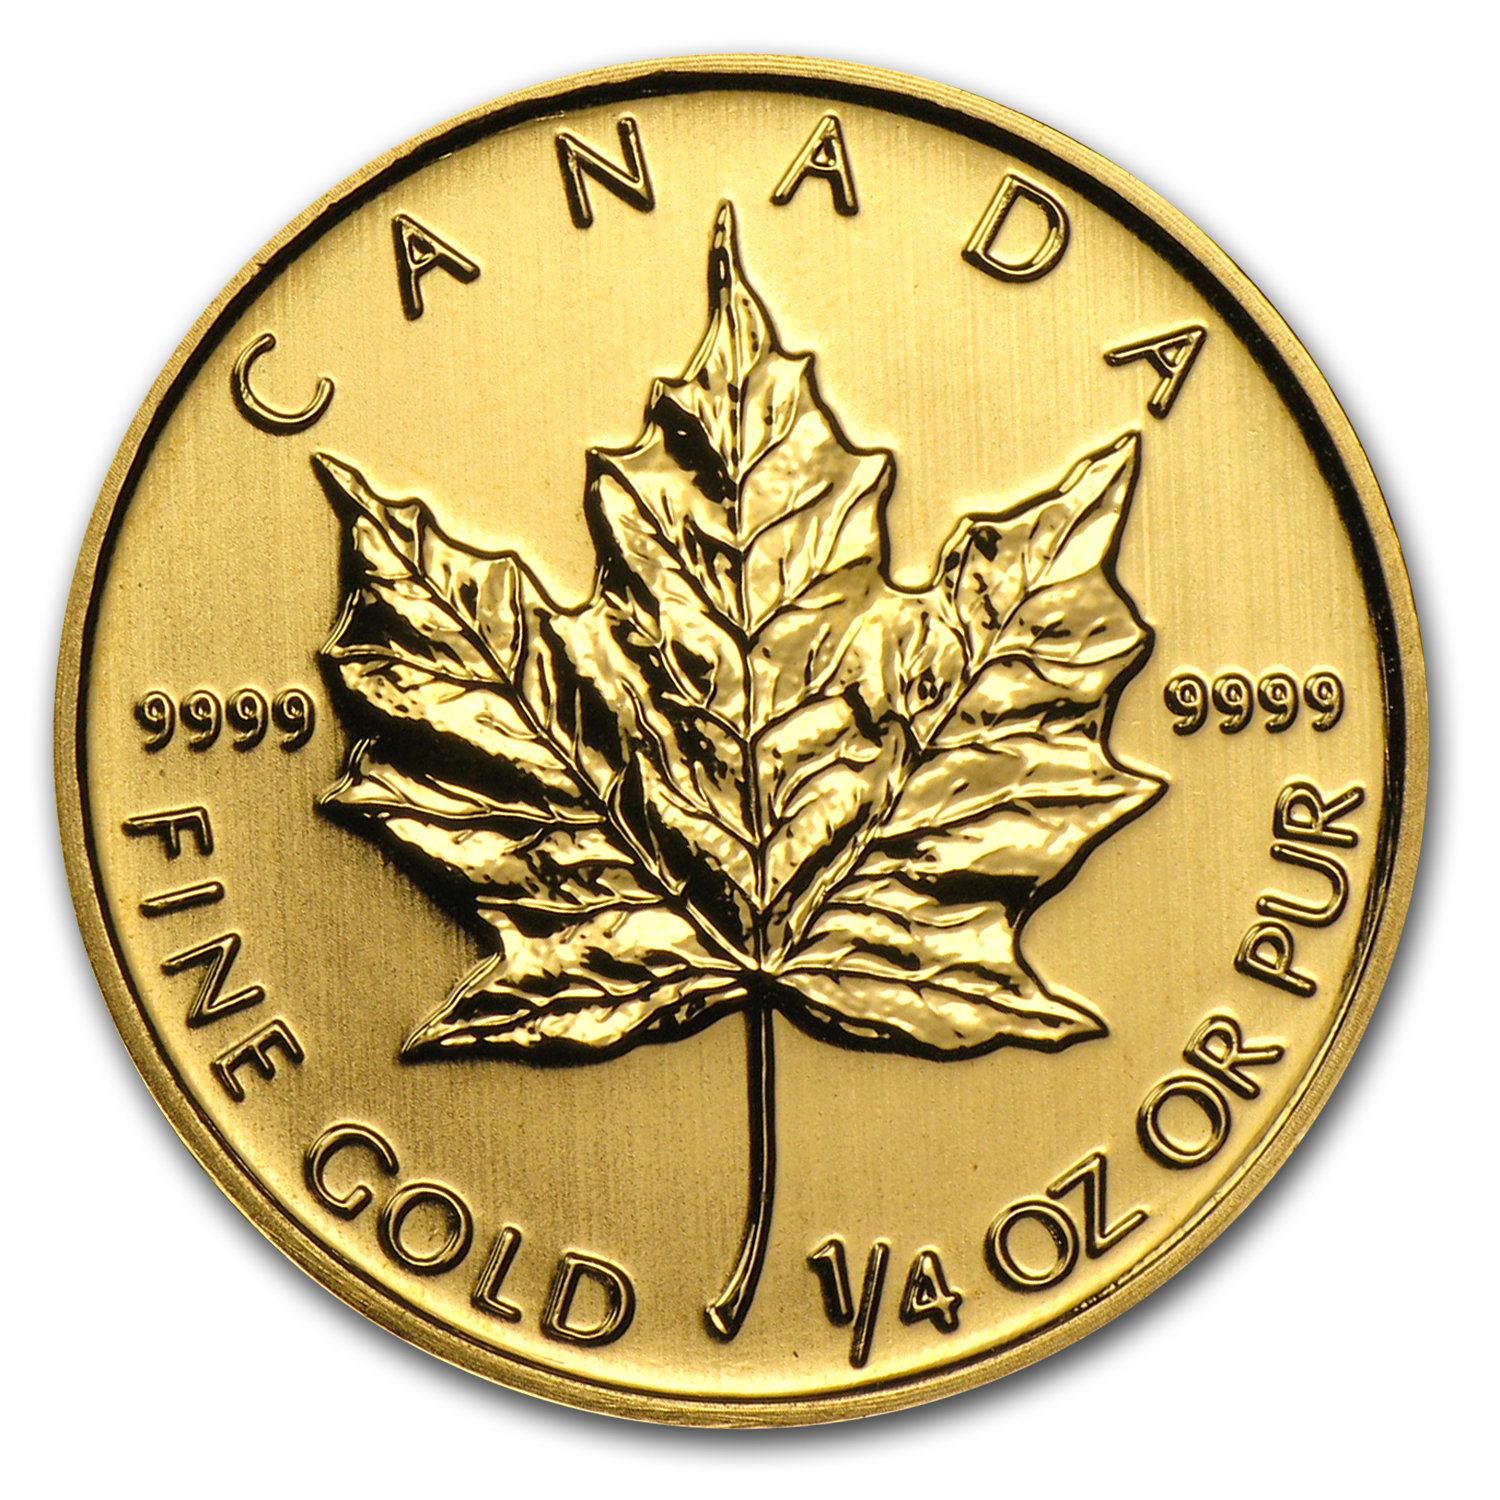 2013 1/4 oz Gold Canadian Maple Leaf BU